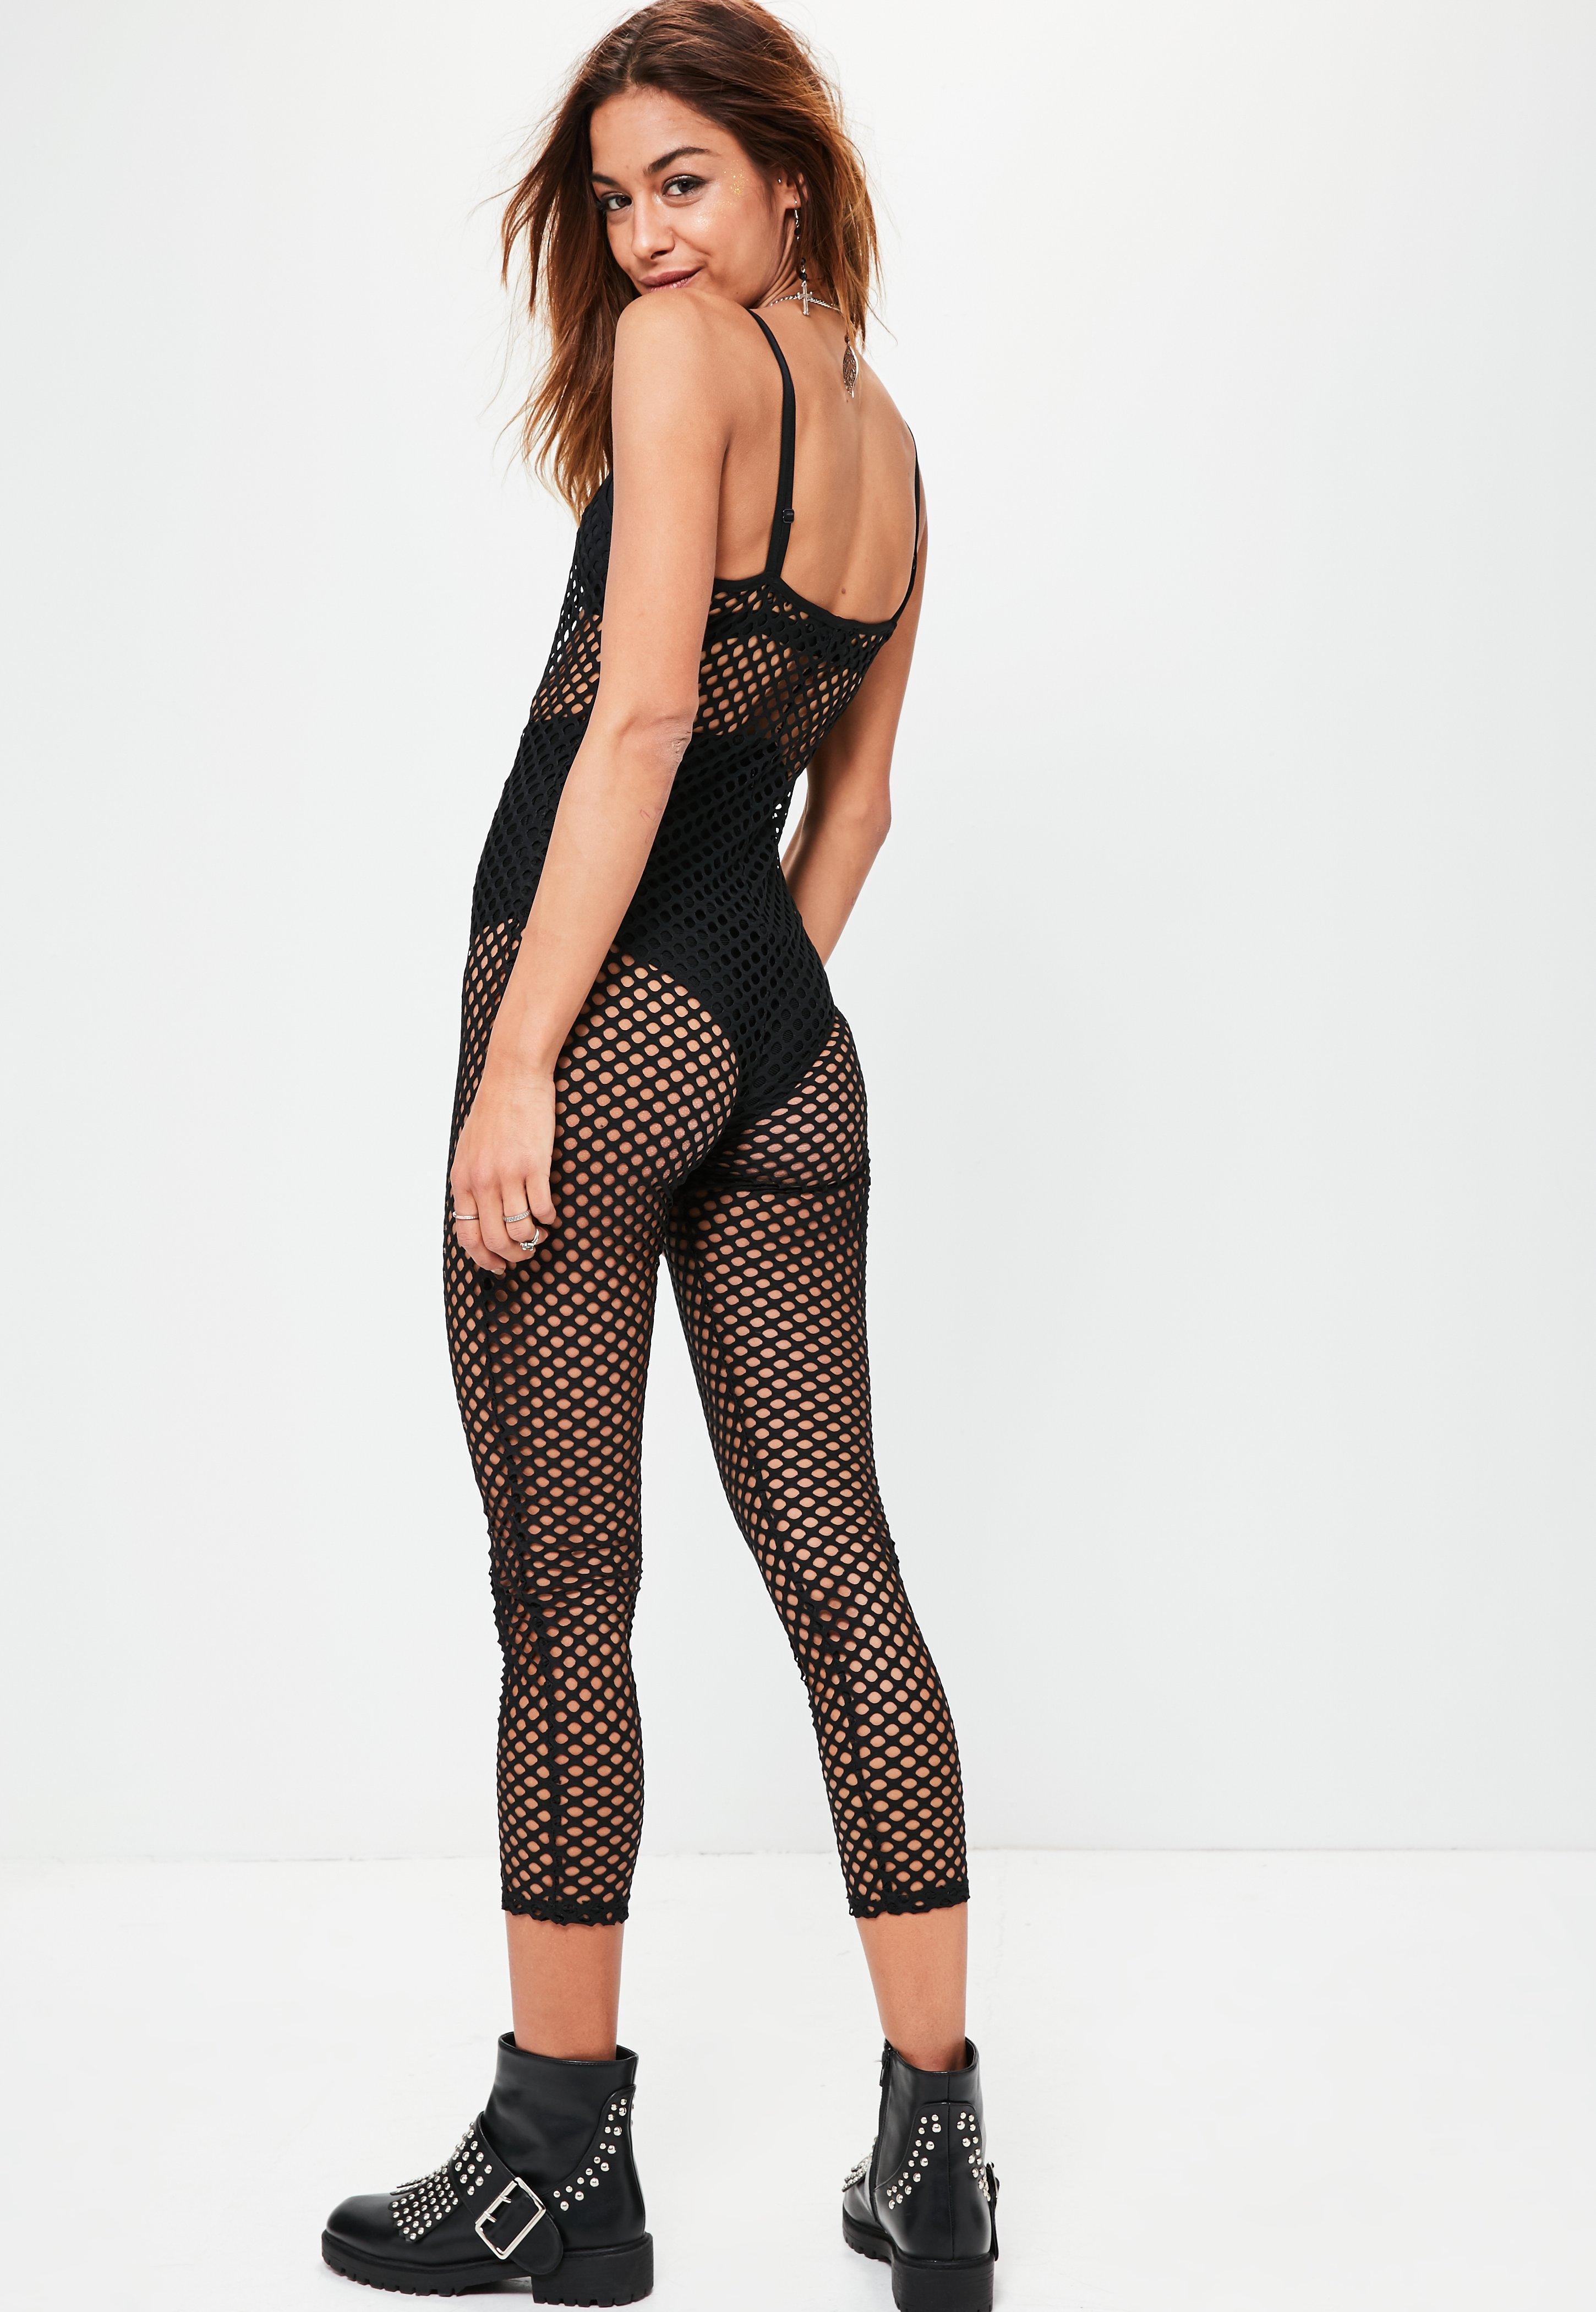 d51451d75250 Lyst - Missguided Black Fishnet Strappy Unitard Jumpsuit in Black